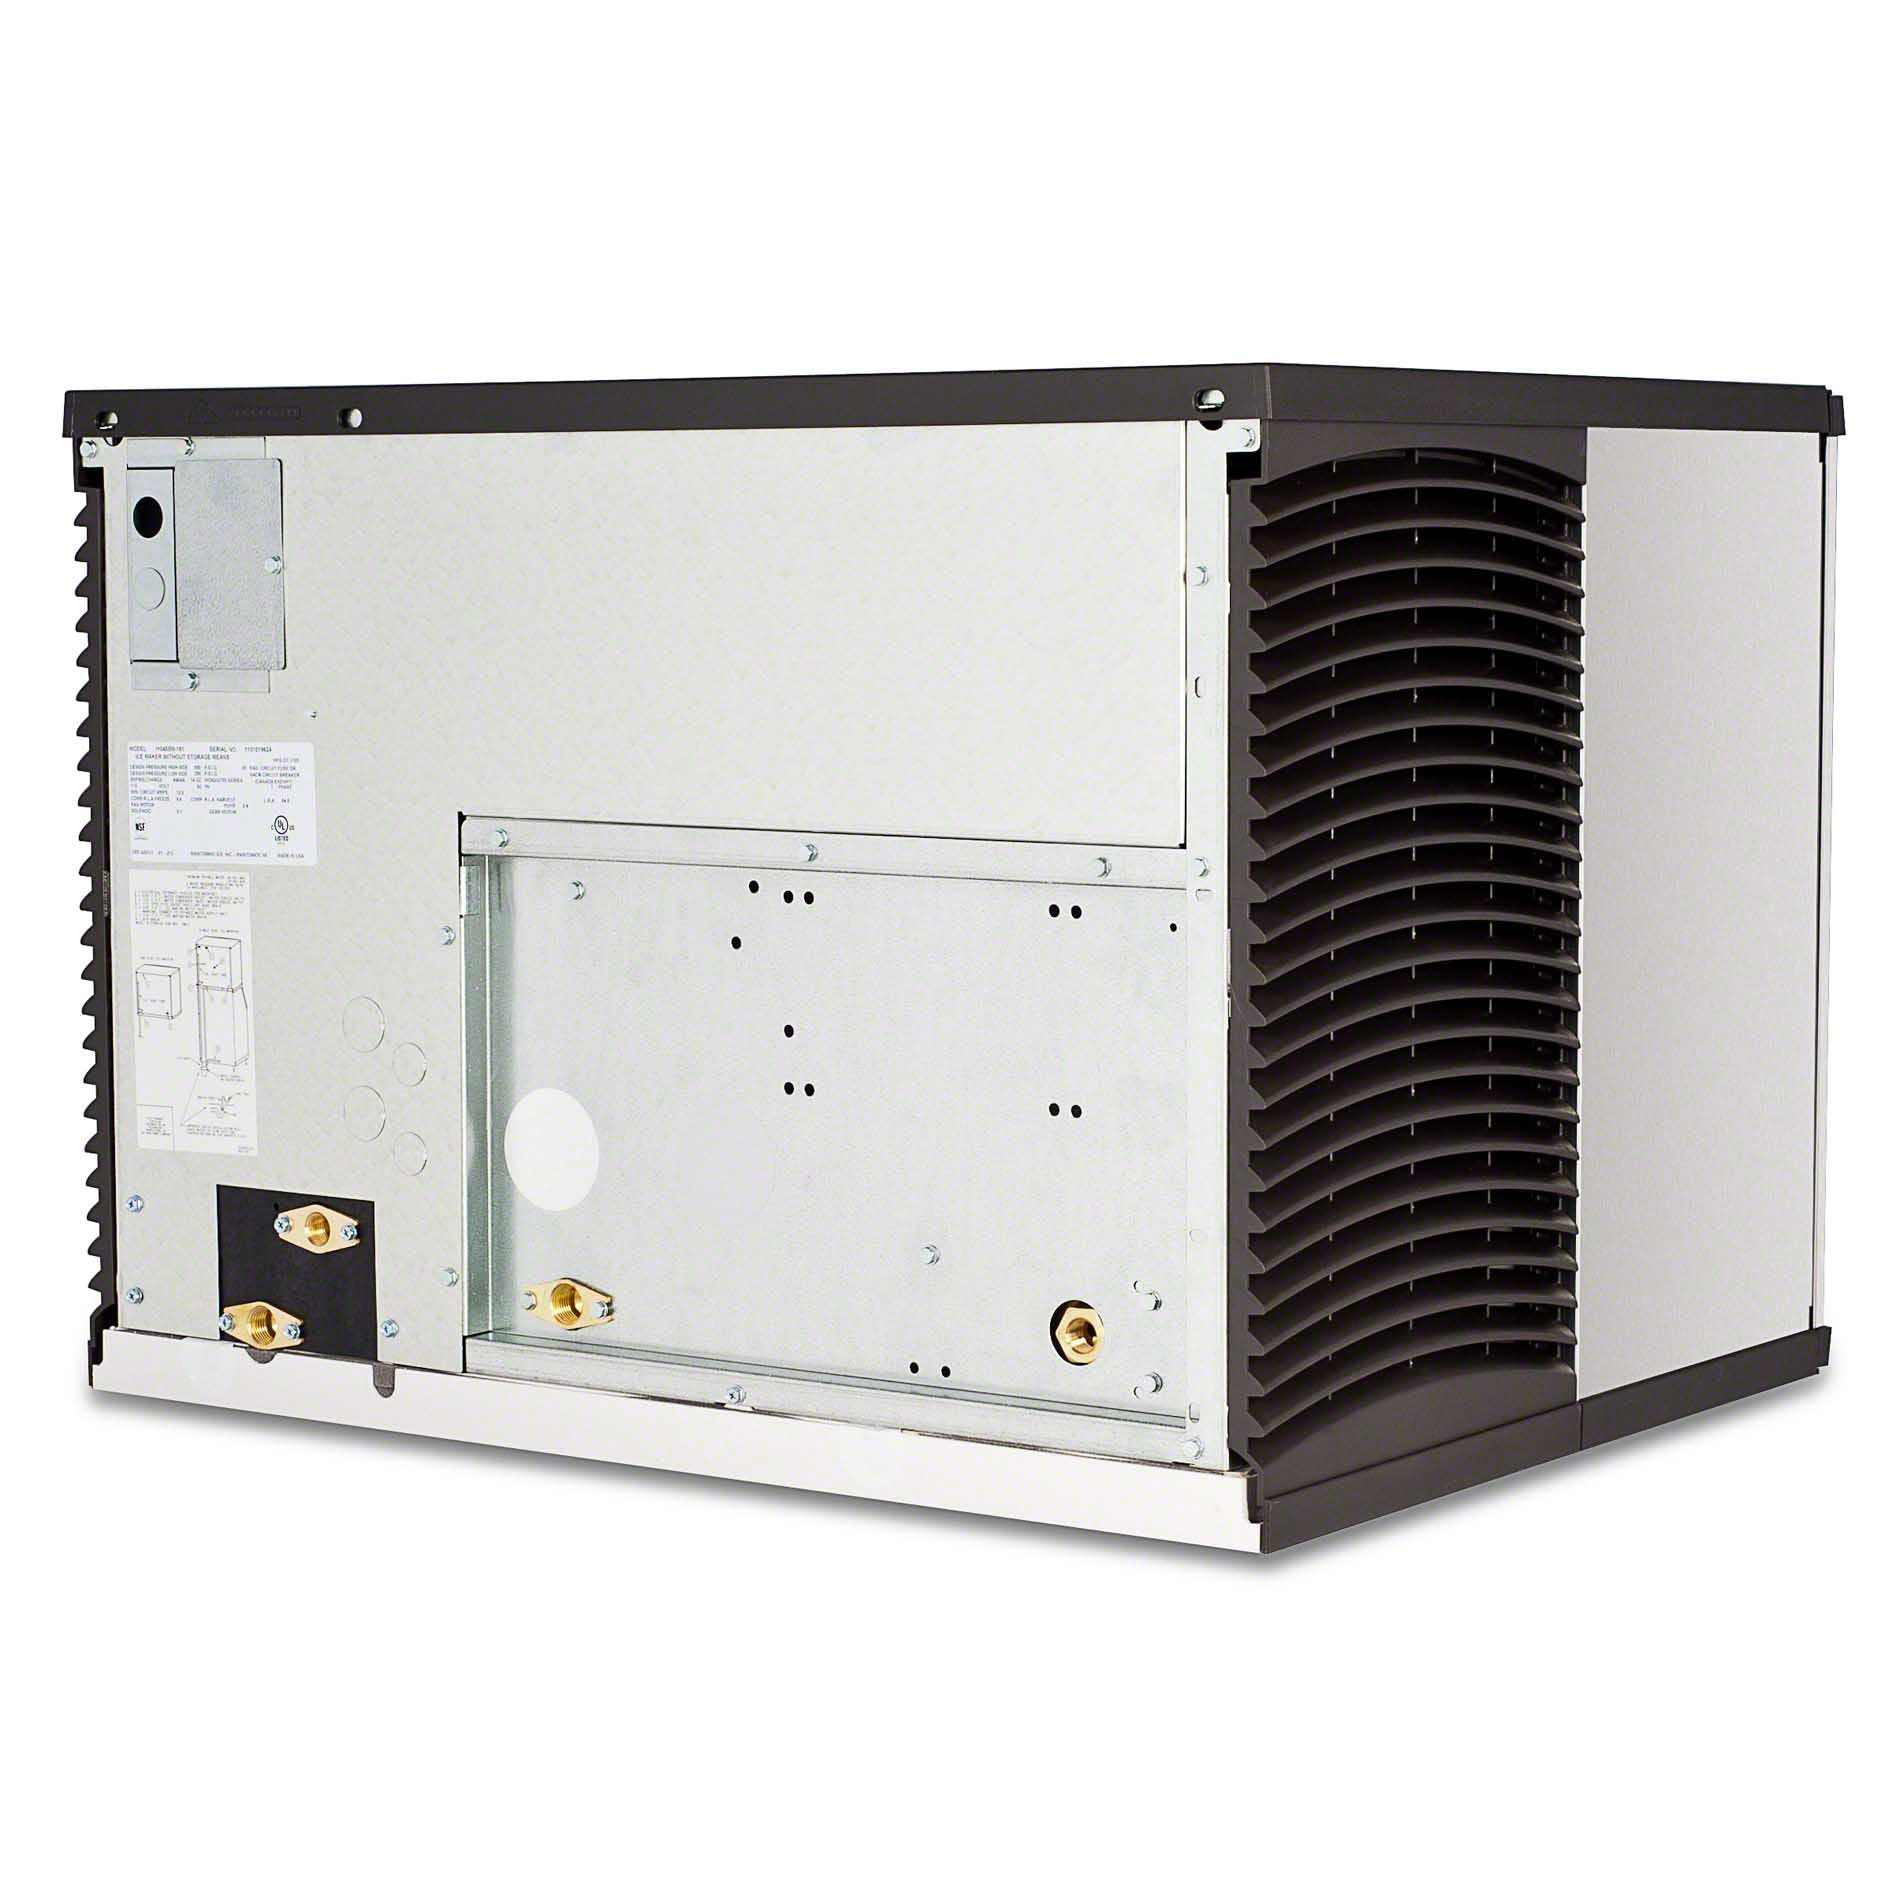 Manitowoc - ID-0503W 550 lb Full Size Cube Ice Machine - Indigo Series - sold by Food Service Warehouse